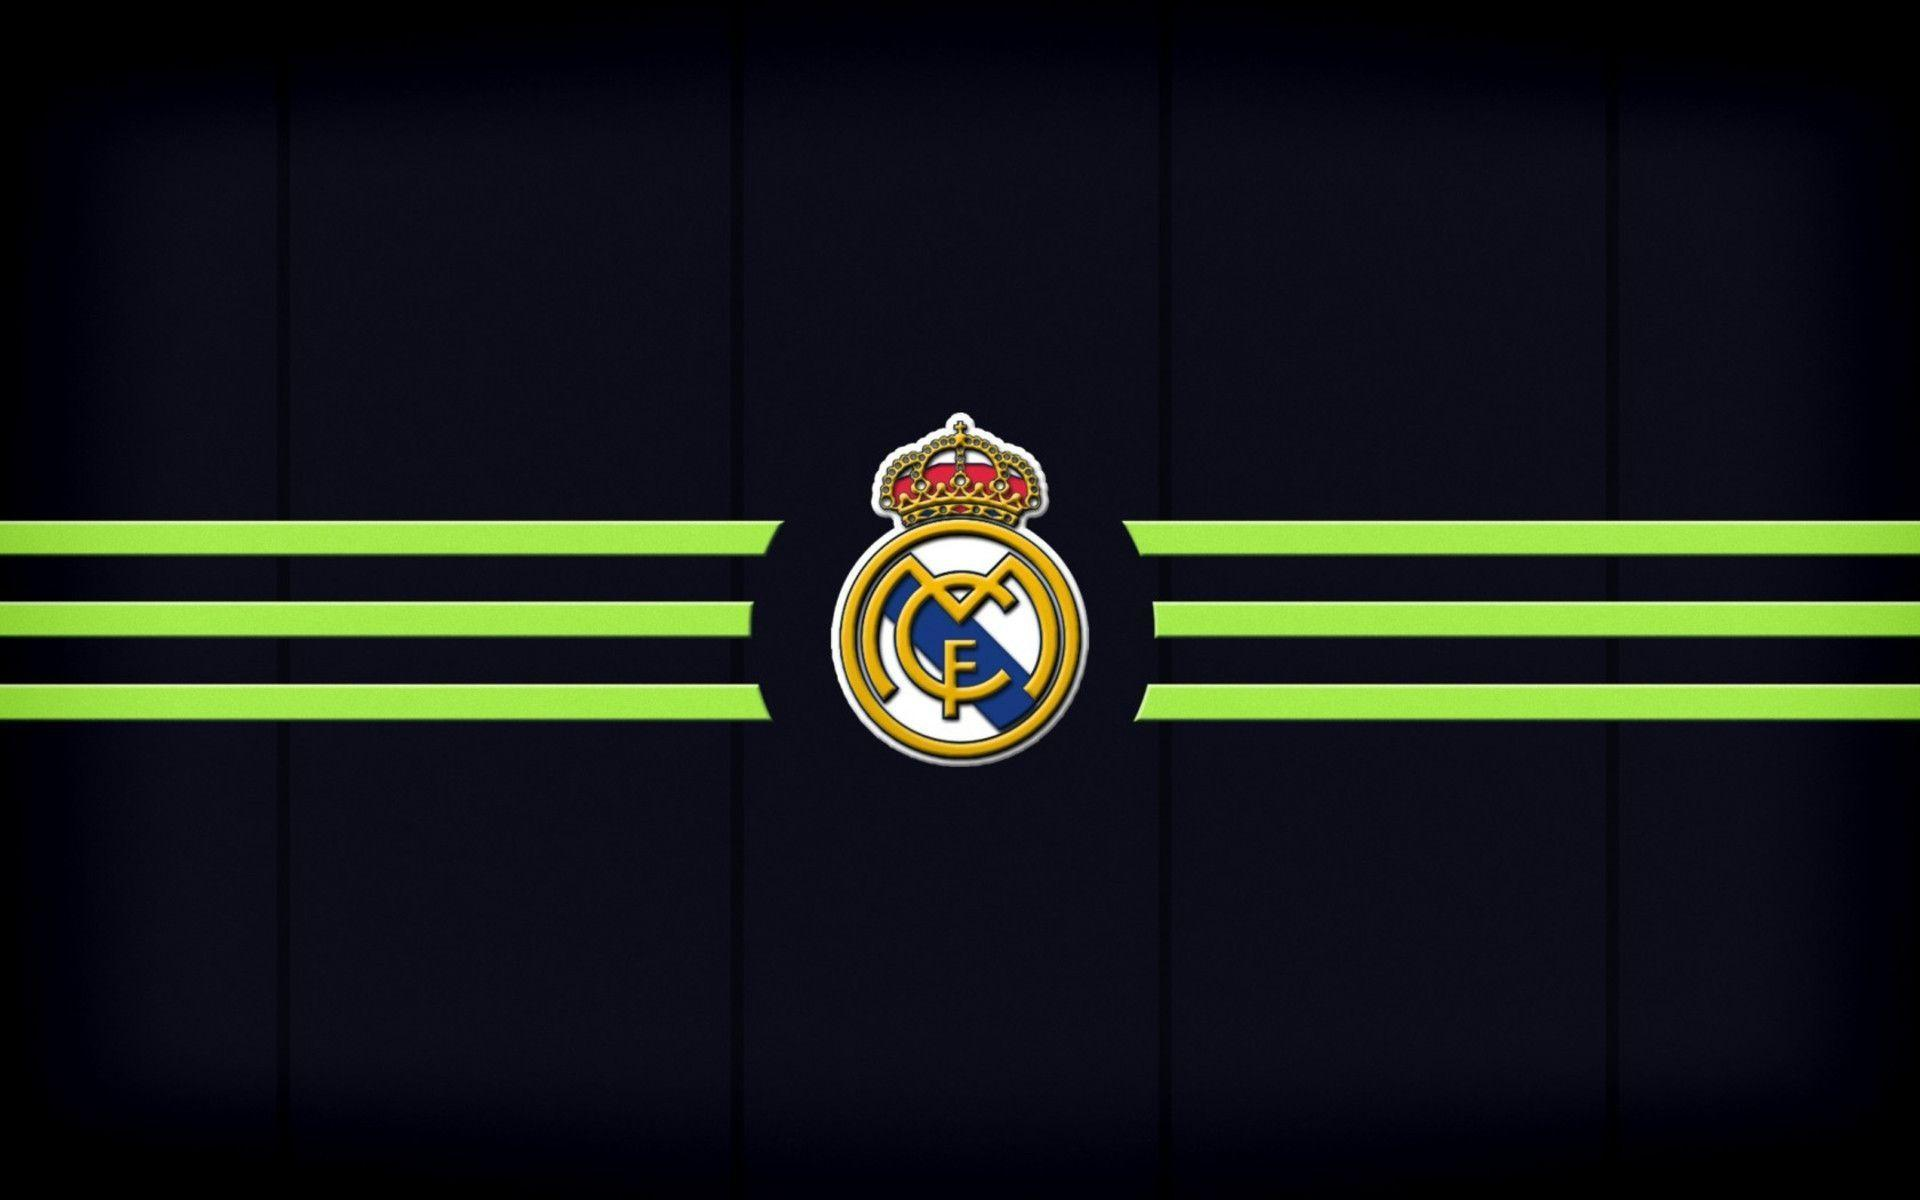 Real Madrid HD Wallpapers   Wallpaper Cave. Backgrounds Real Madrid 2017   Wallpaper Cave